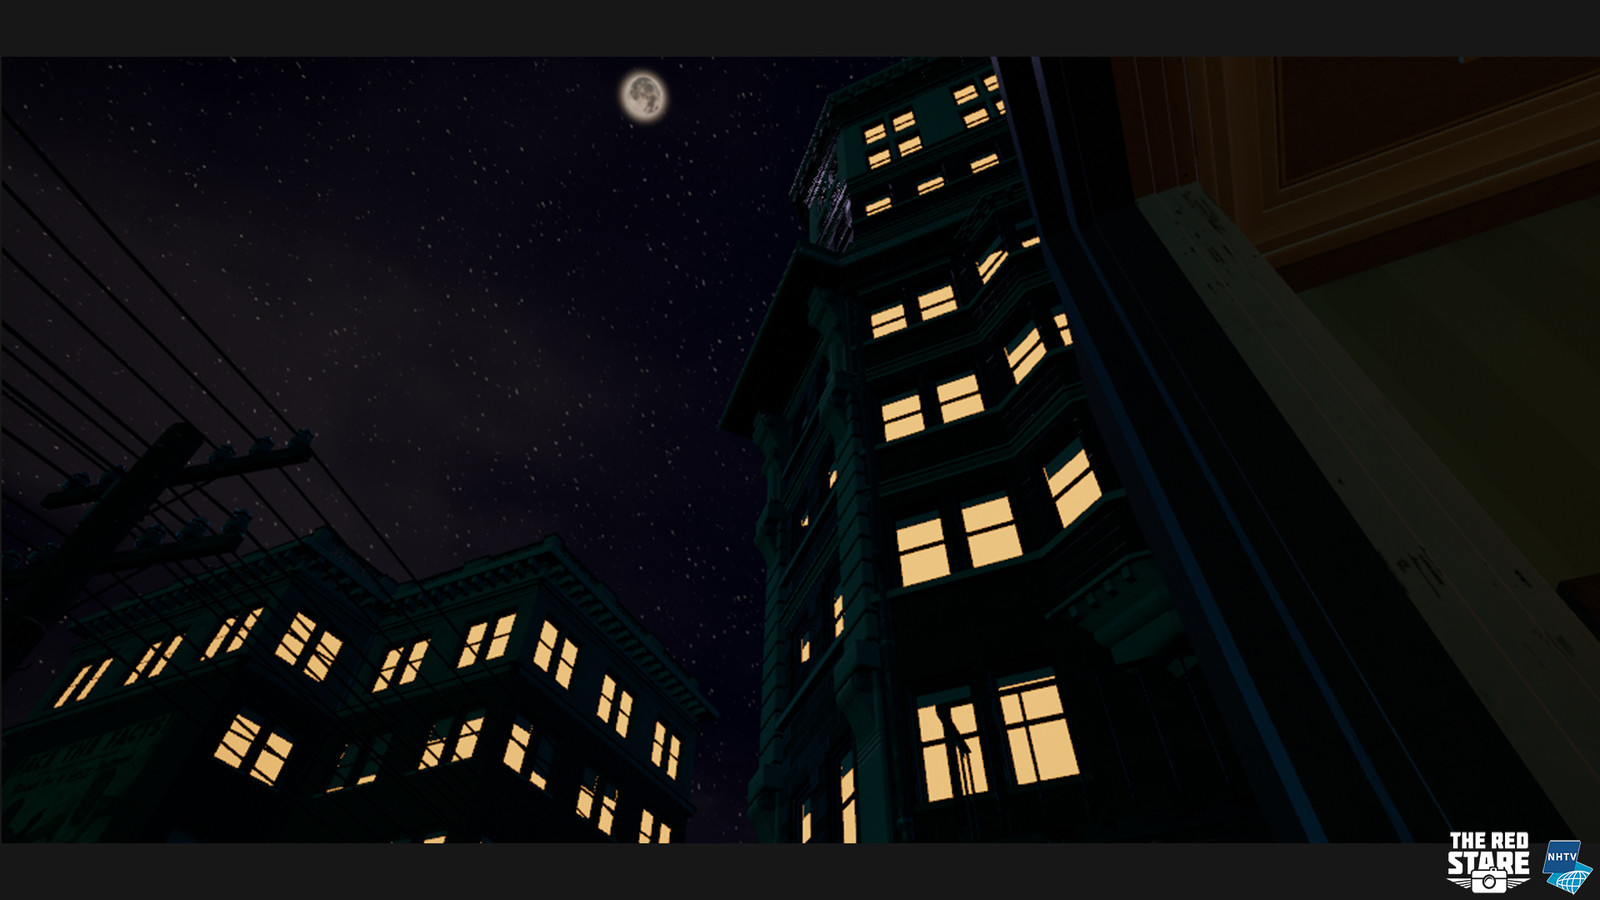 Ingame screenshot of the players view on the building at night.